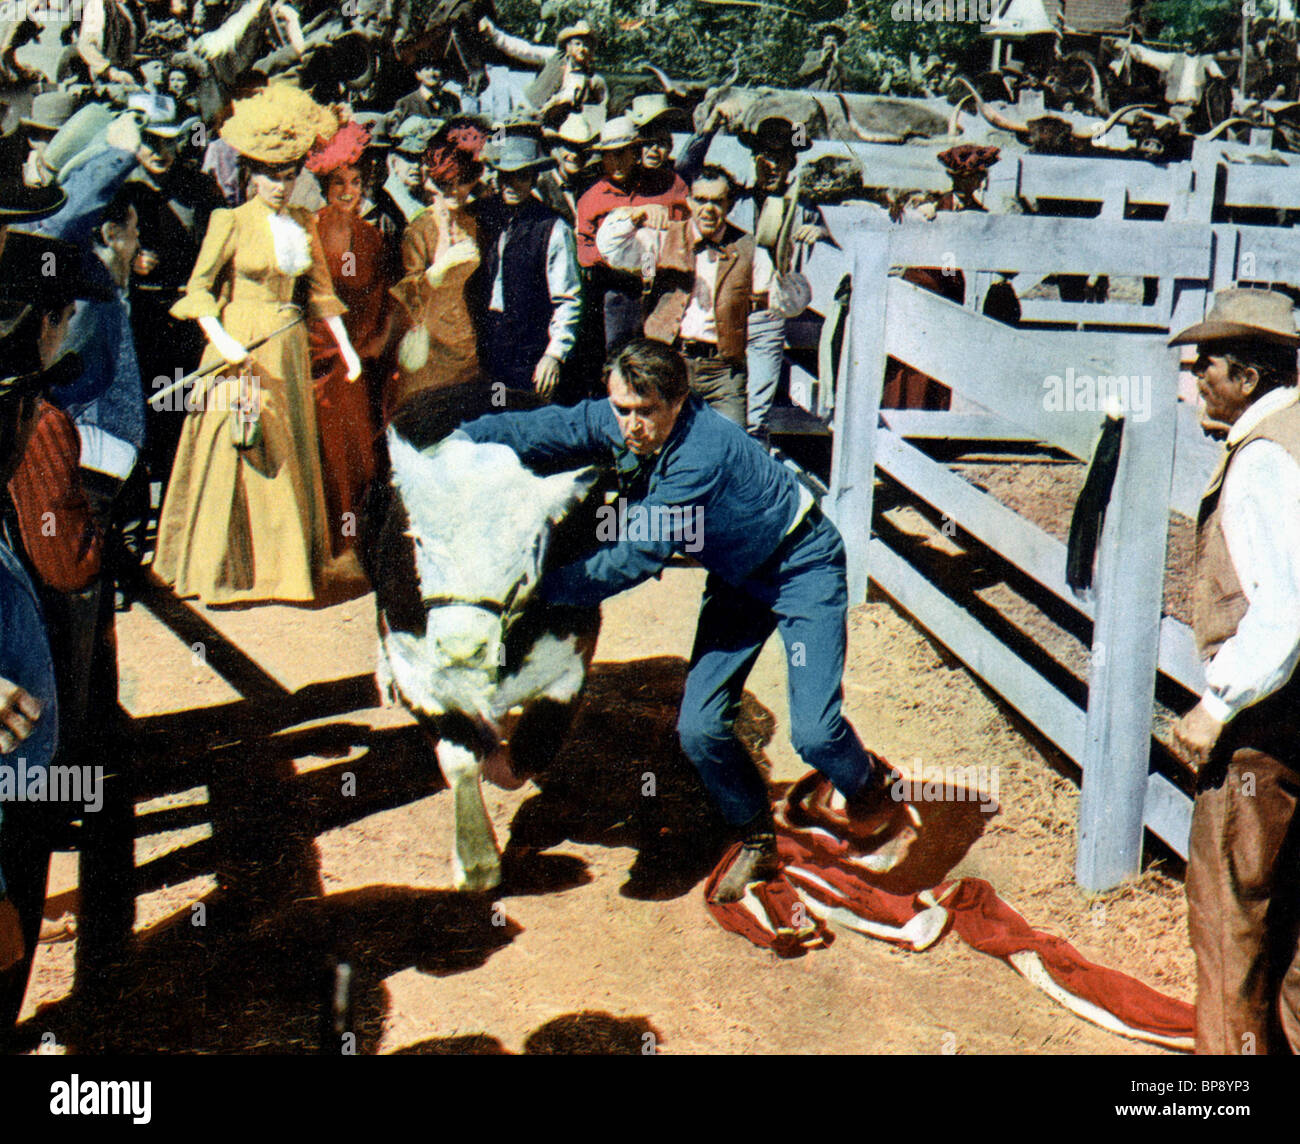 JAMES STEWART THE RARE BREED (1966) - Stock Image